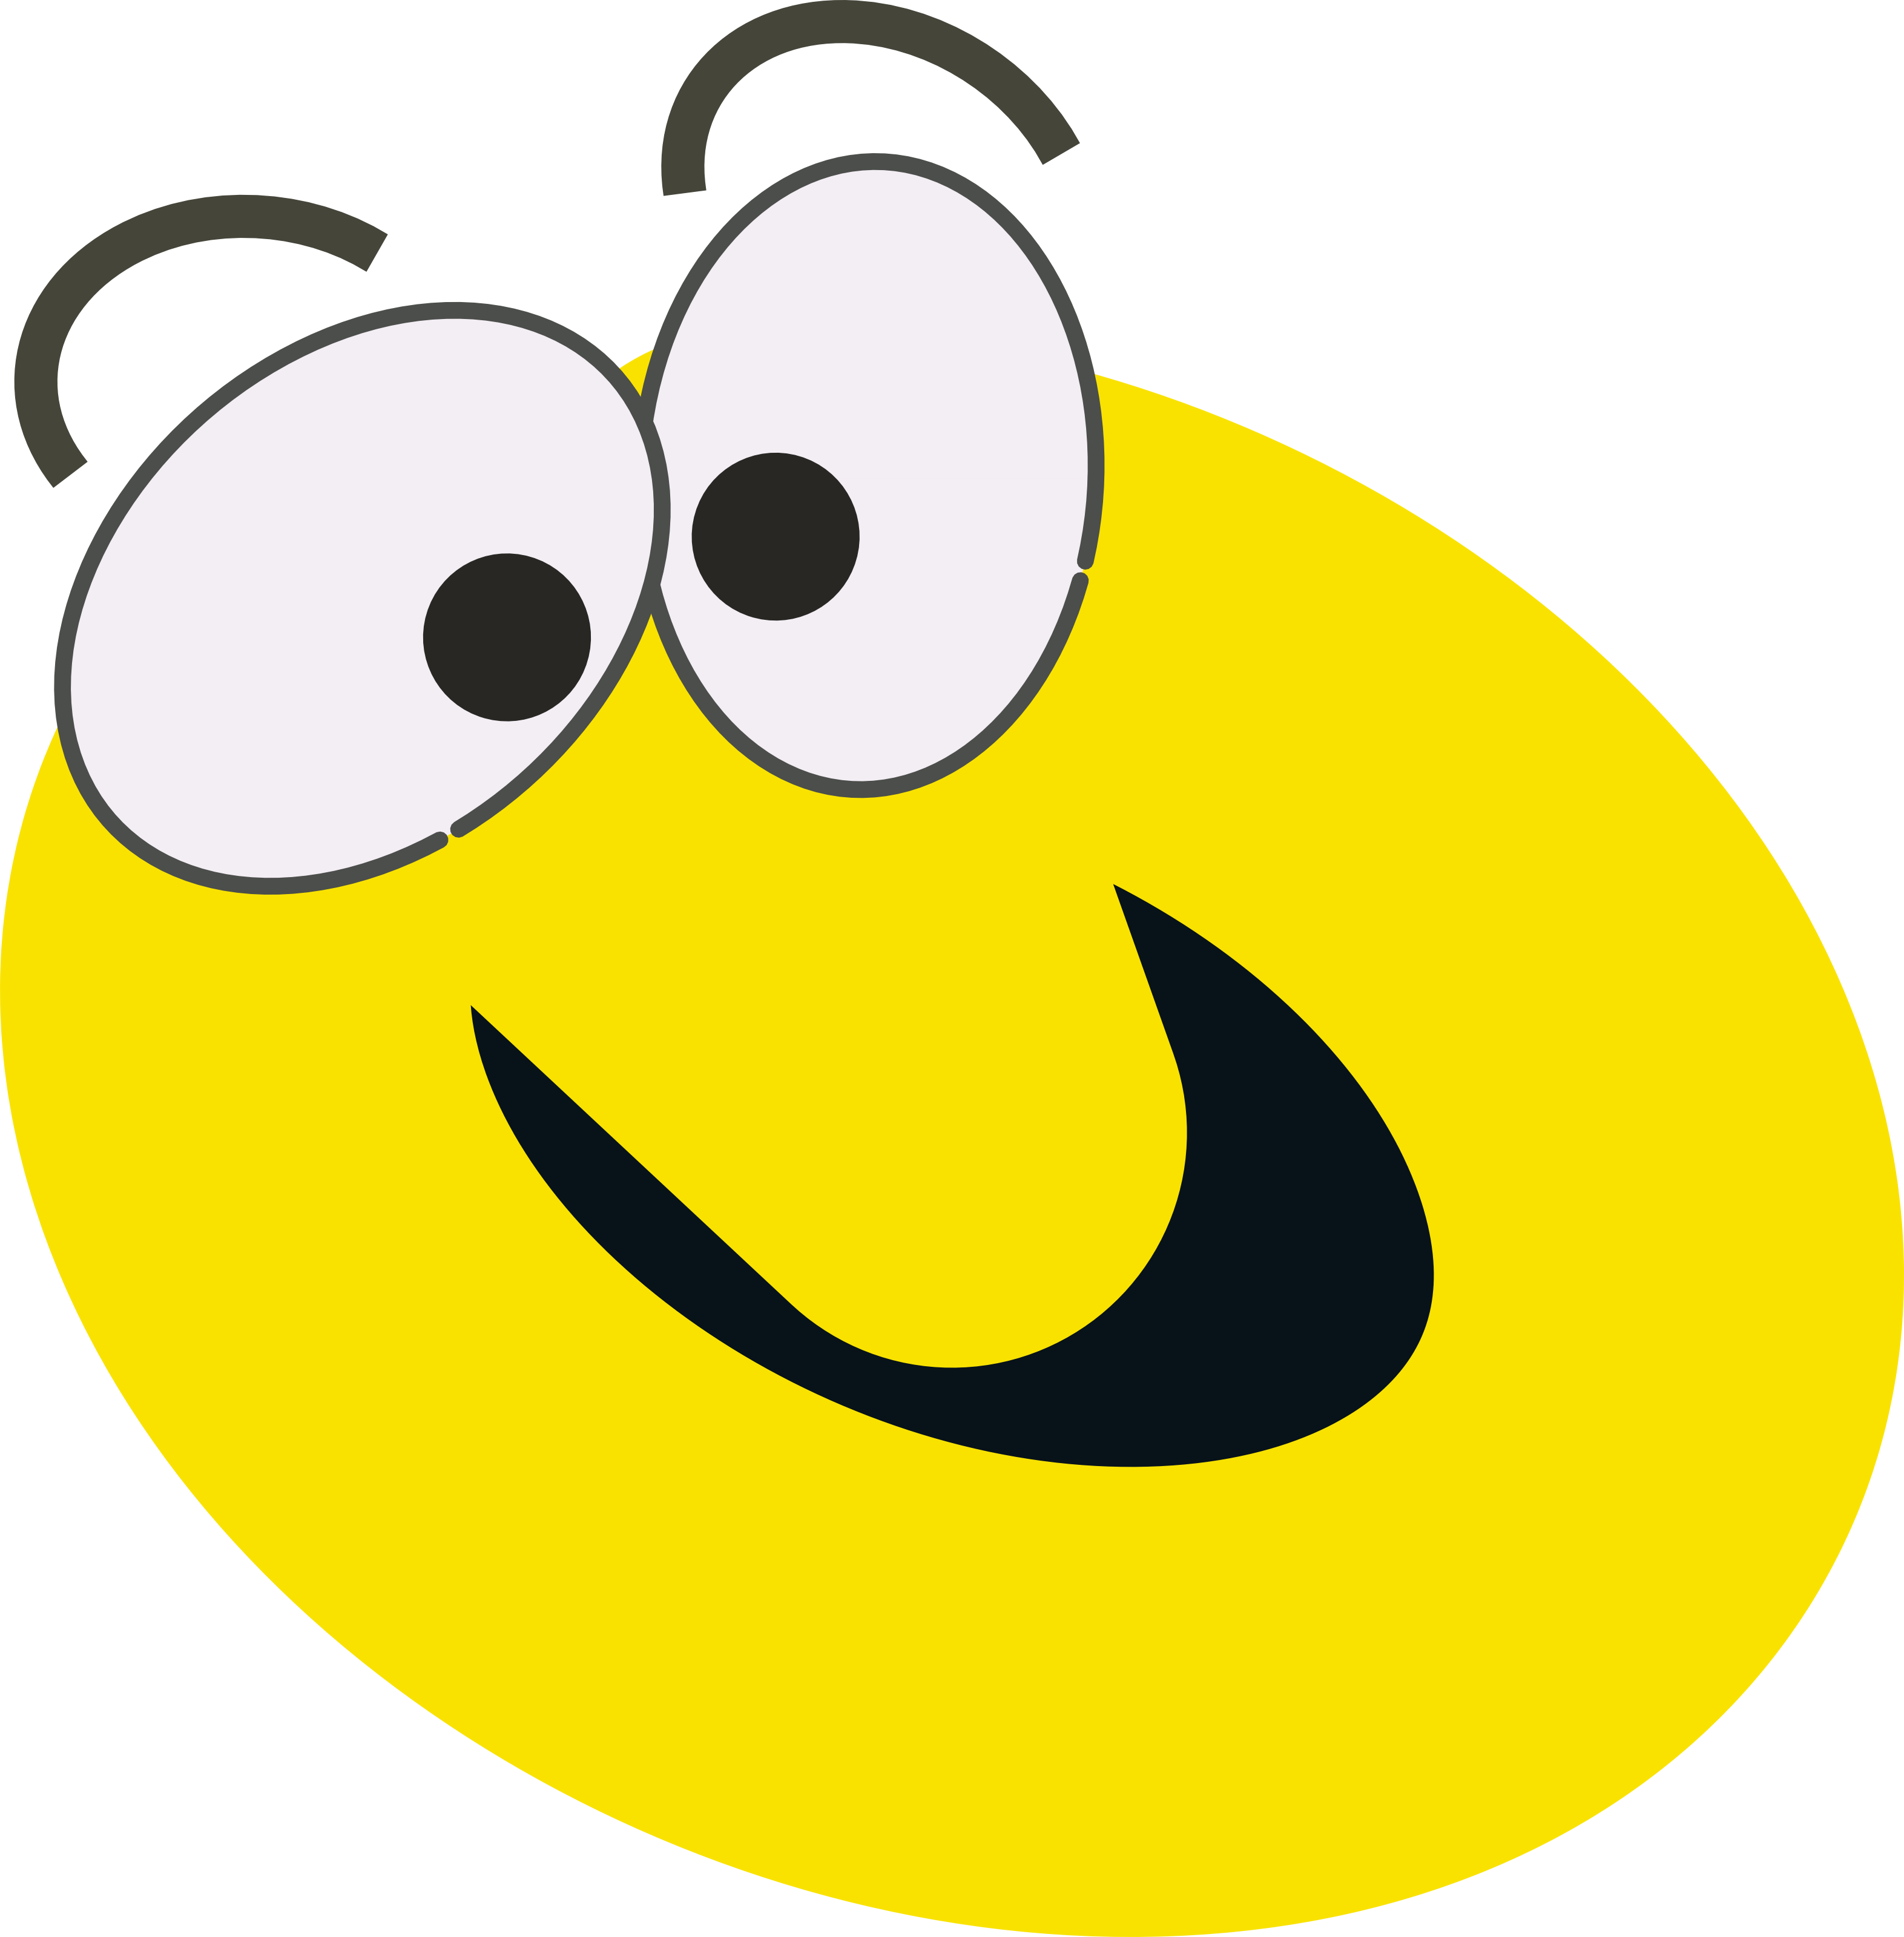 Smiling flower clipart image transparent stock Happy face clip art cartoon smiley faces – Gclipart.com image transparent stock